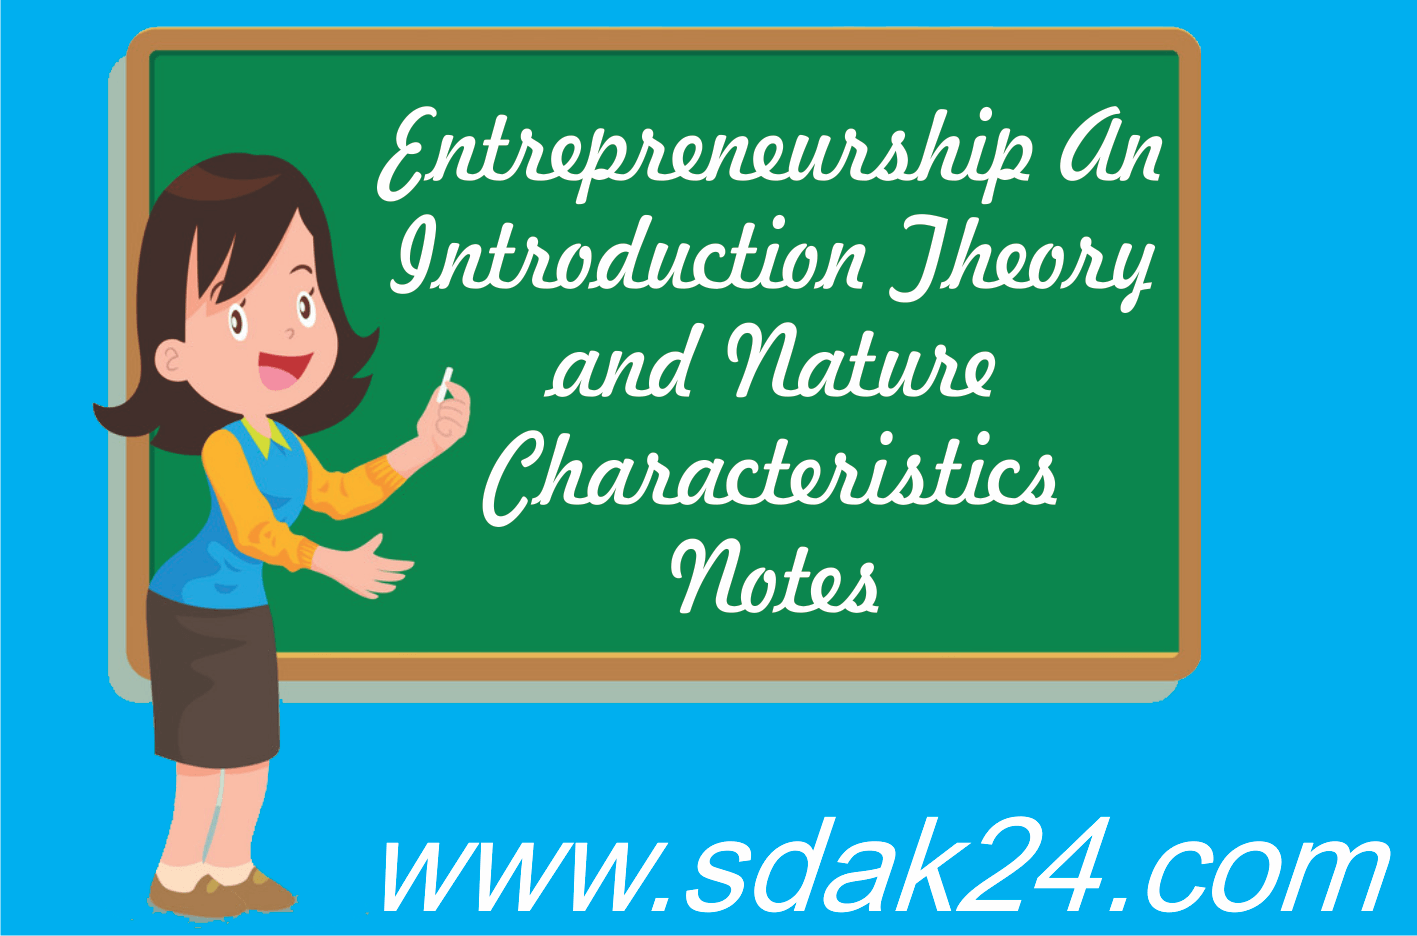 Entrepreneurship An Introduction Theory and Nature Characteristics Notes